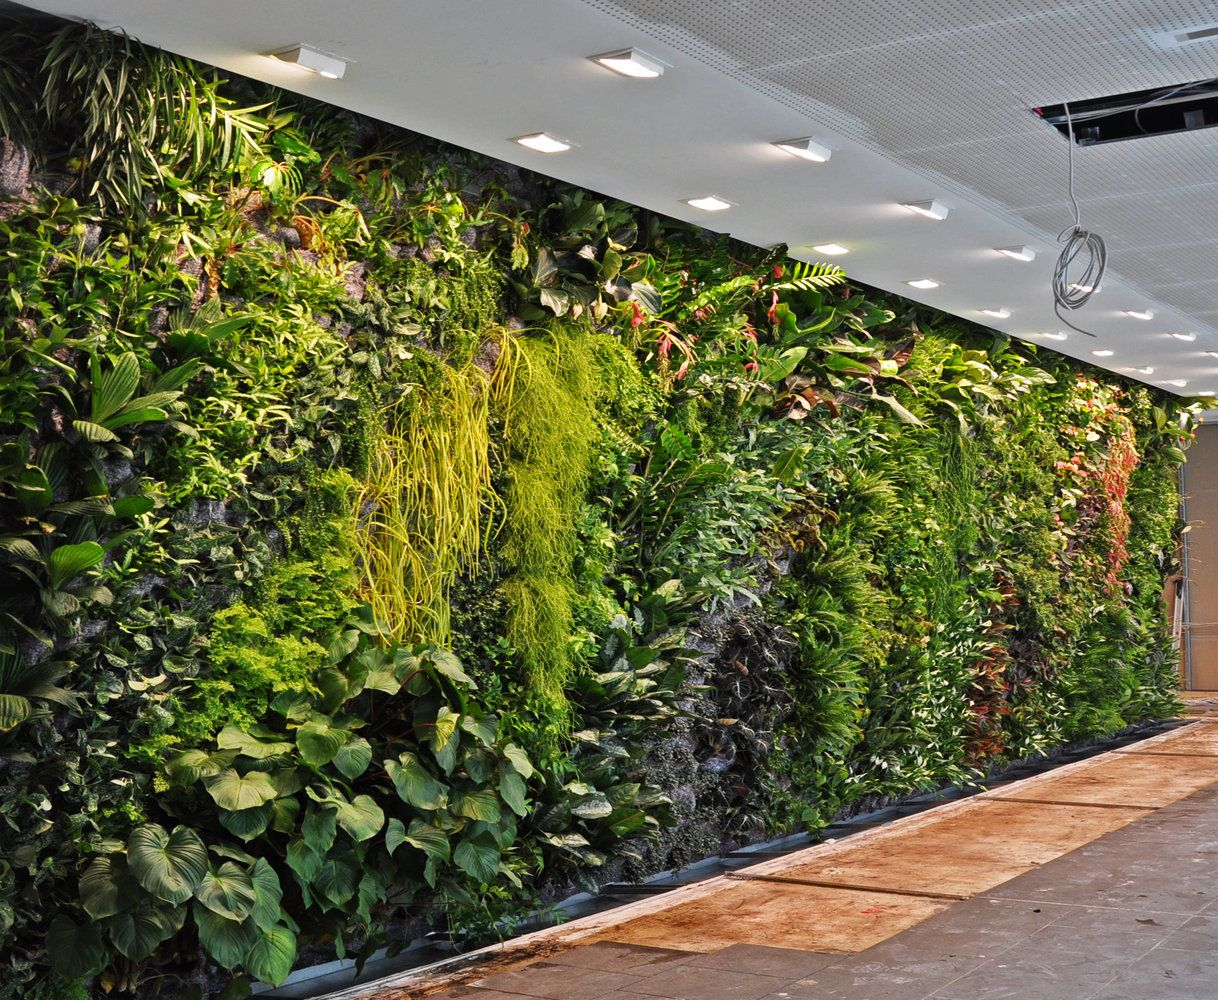 Vertical Indoor Garden 17 amazing vertical garden designs unique interior styles 17 amazing vertical garden designs unique interior styles more workwithnaturefo